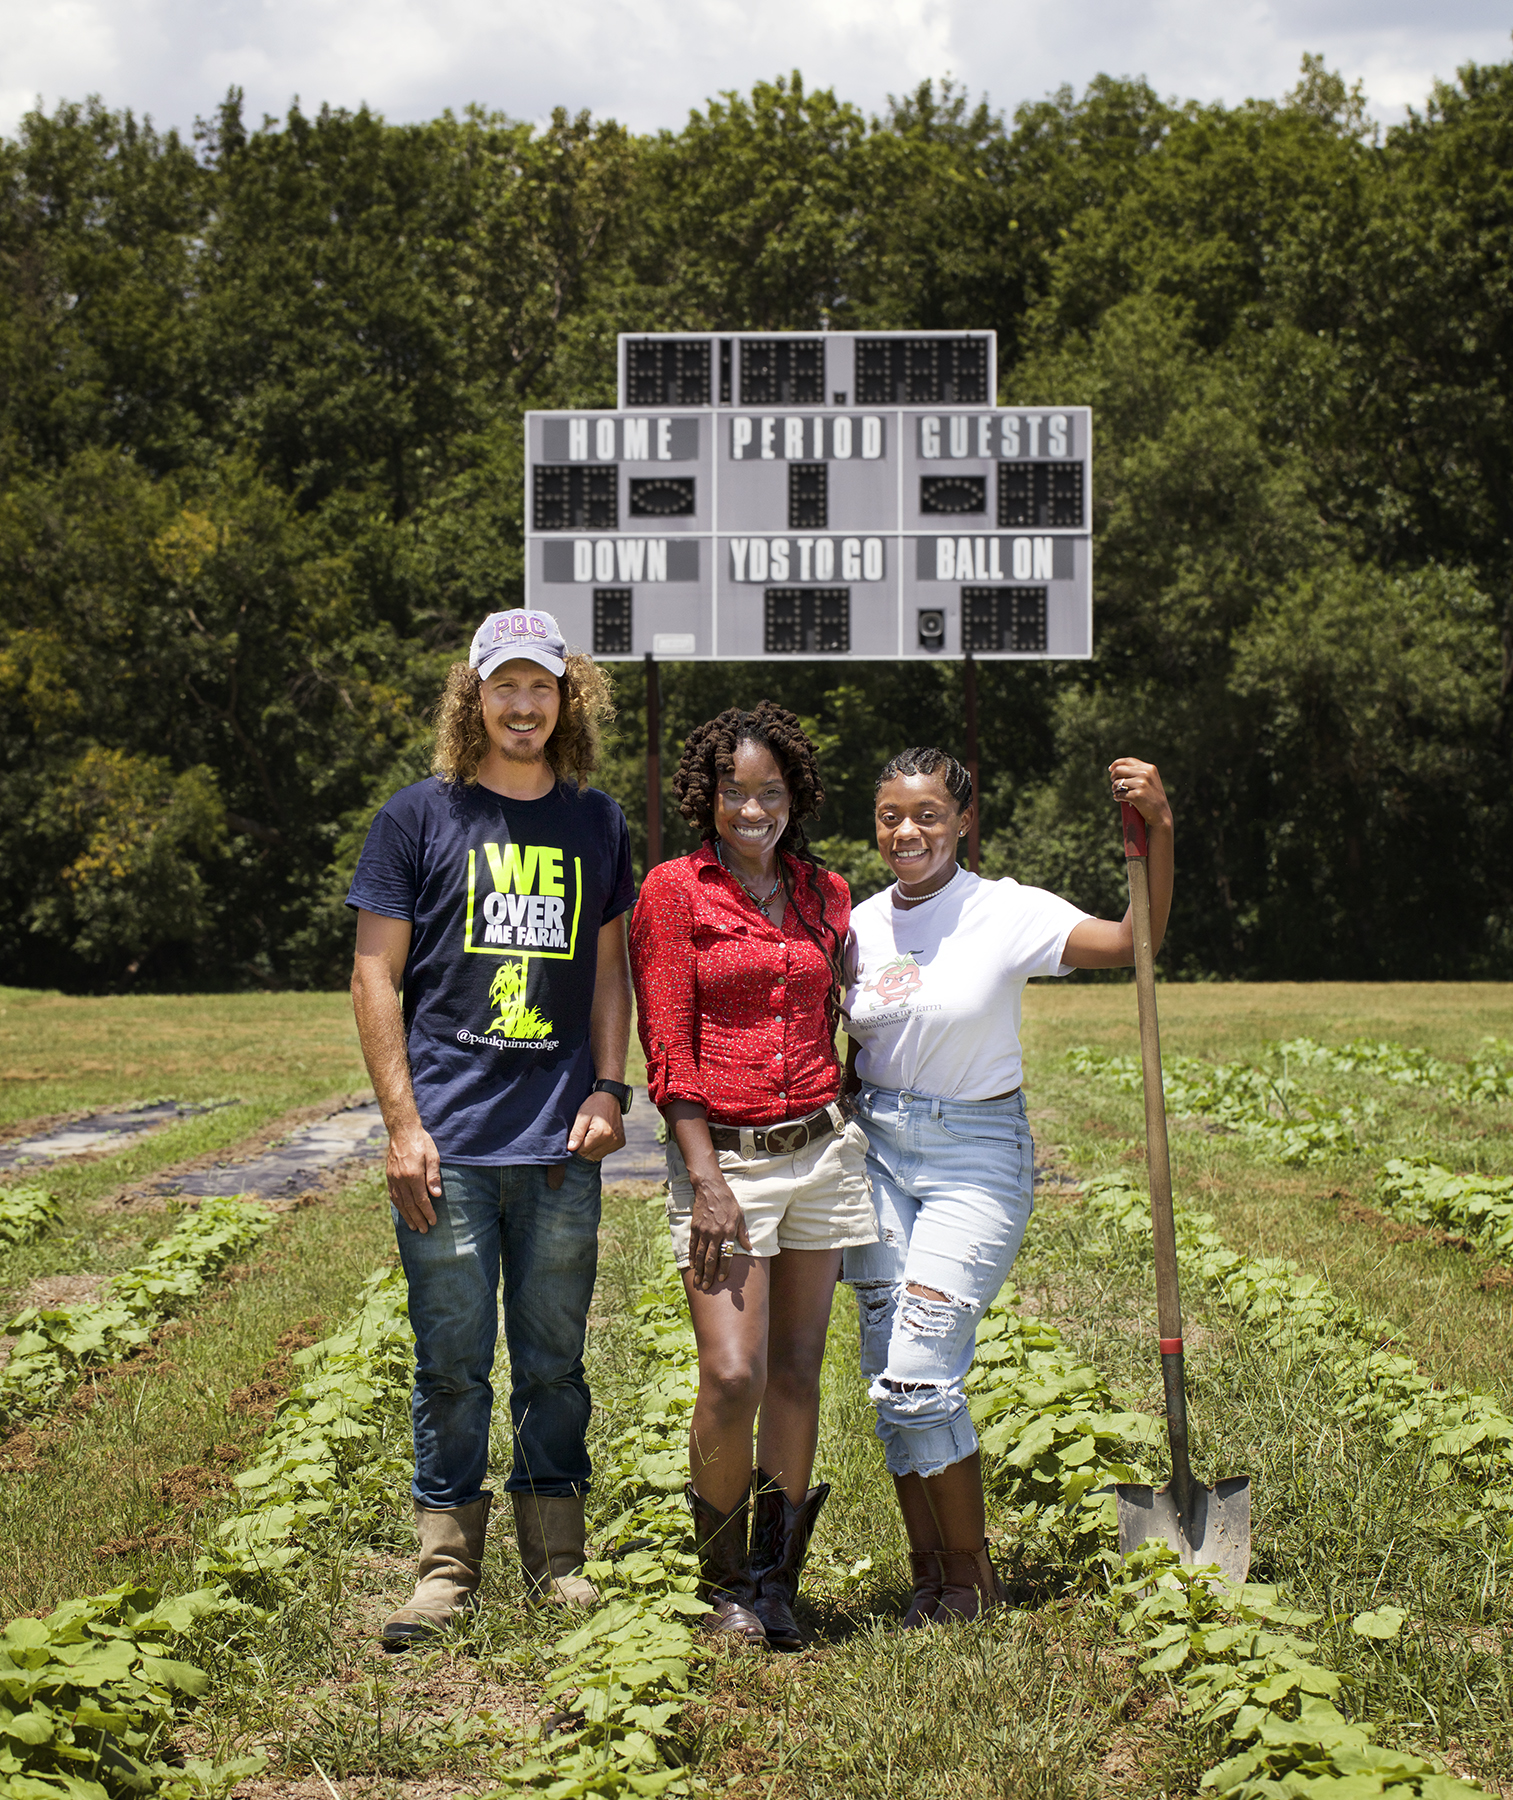 What Happened When One College Turned Its Football Field Into a Farm